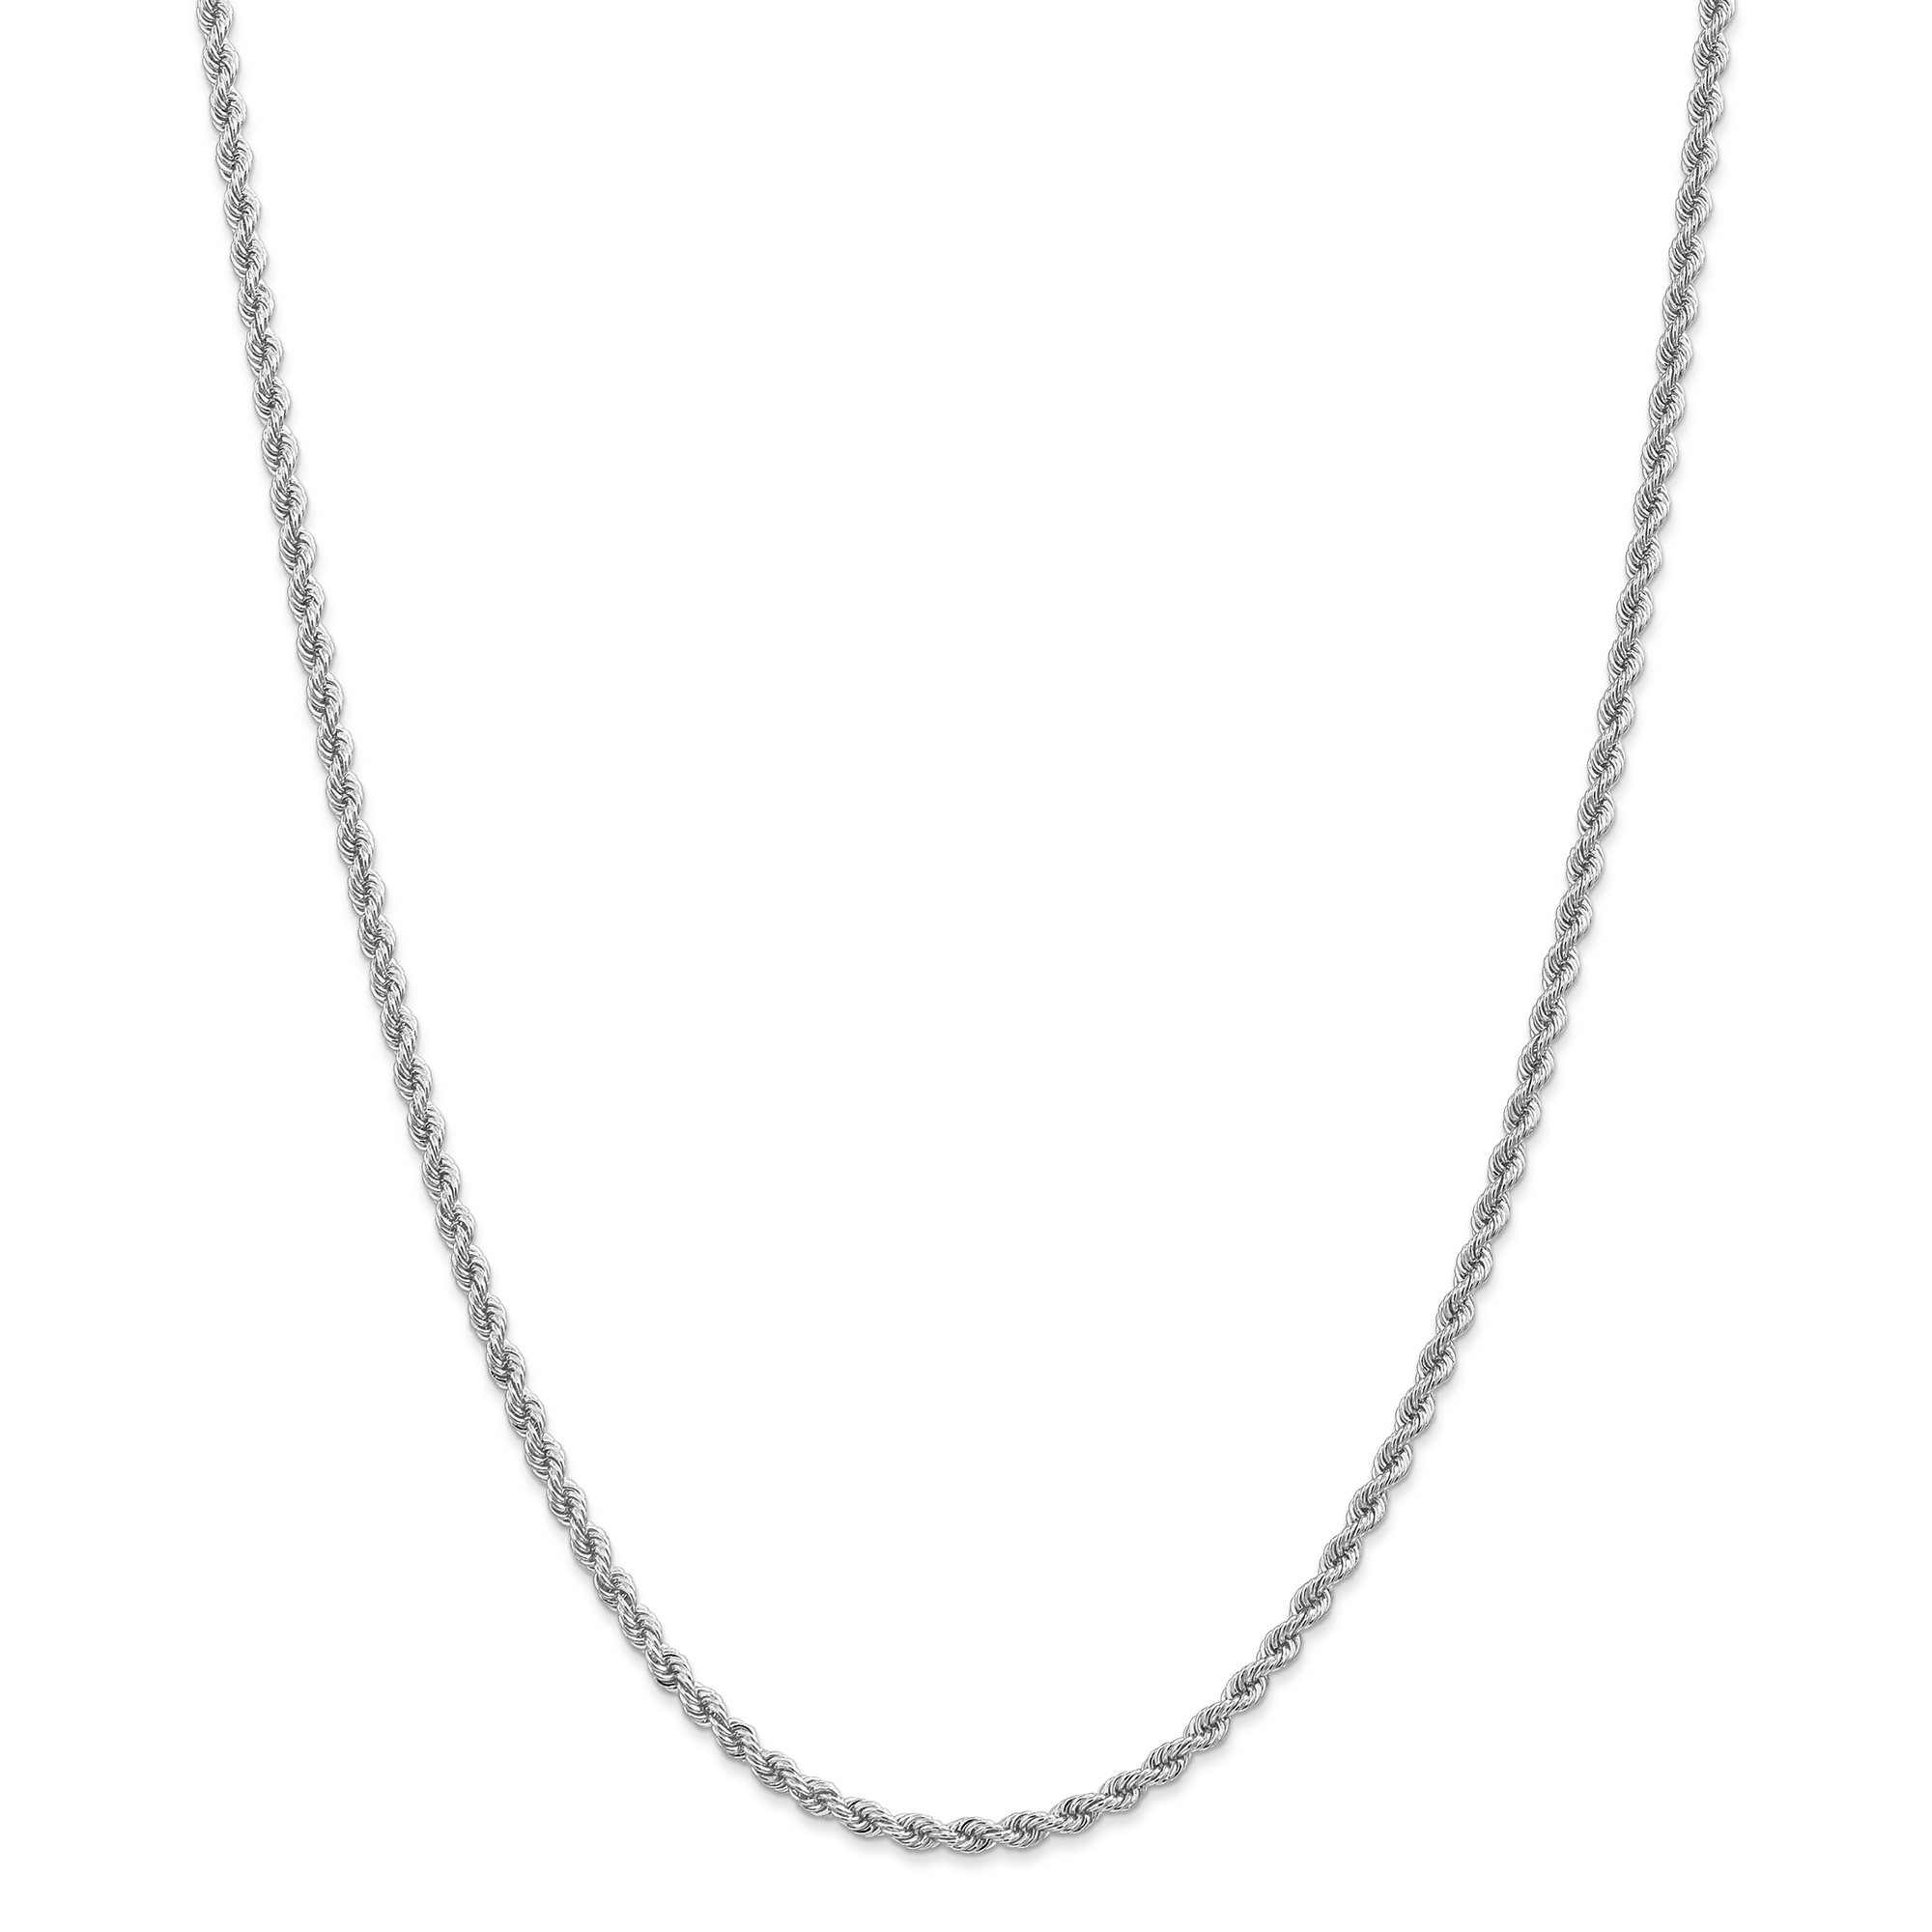 14kt White Gold 2.75mm Link Rope Chain Necklace 20 Inch Pendant Charm Fine Jewelry For Women Gift Set by IceCarats Designer Jewelry Gift USA